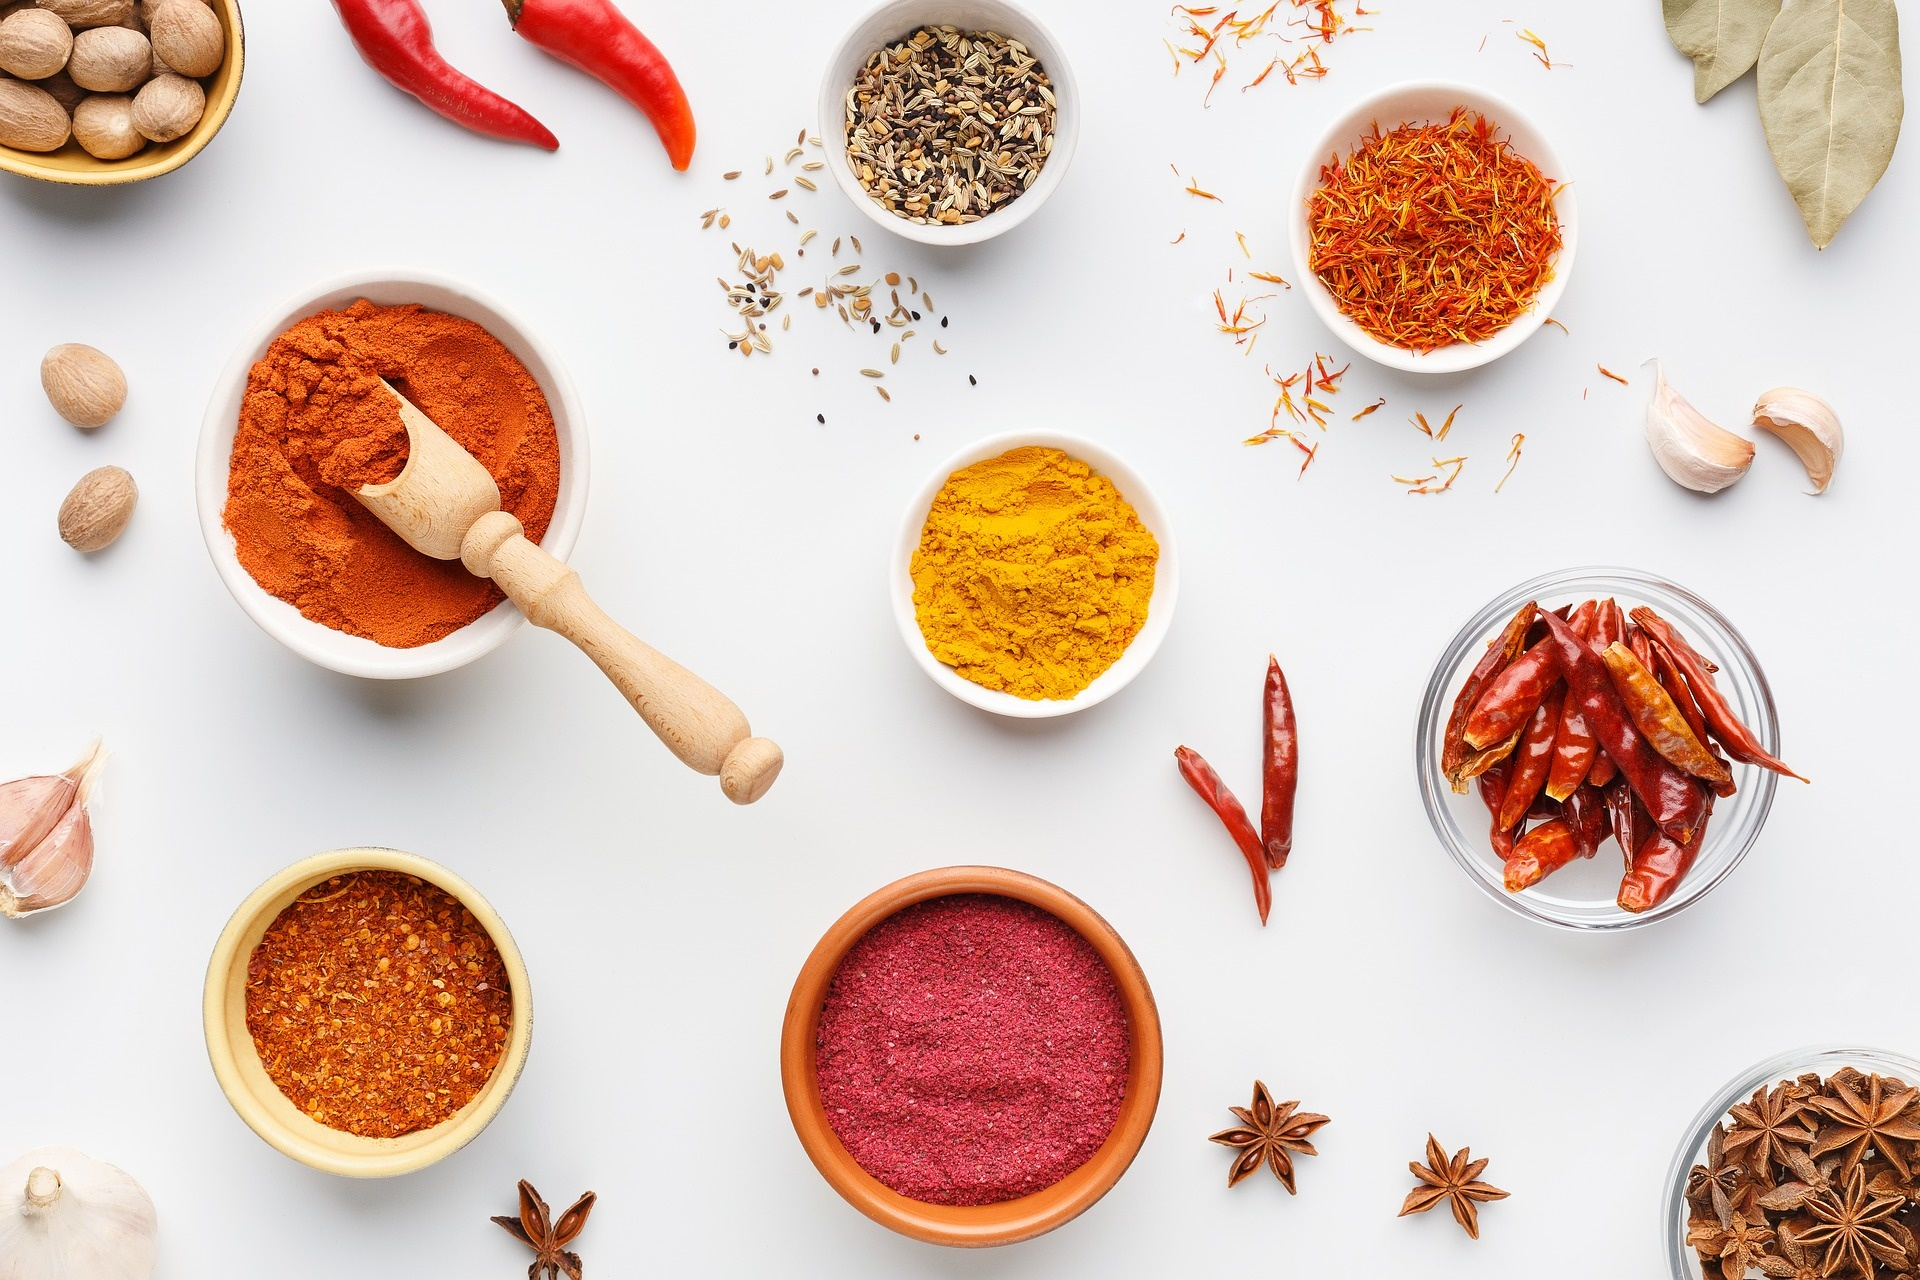 Asian spice mix